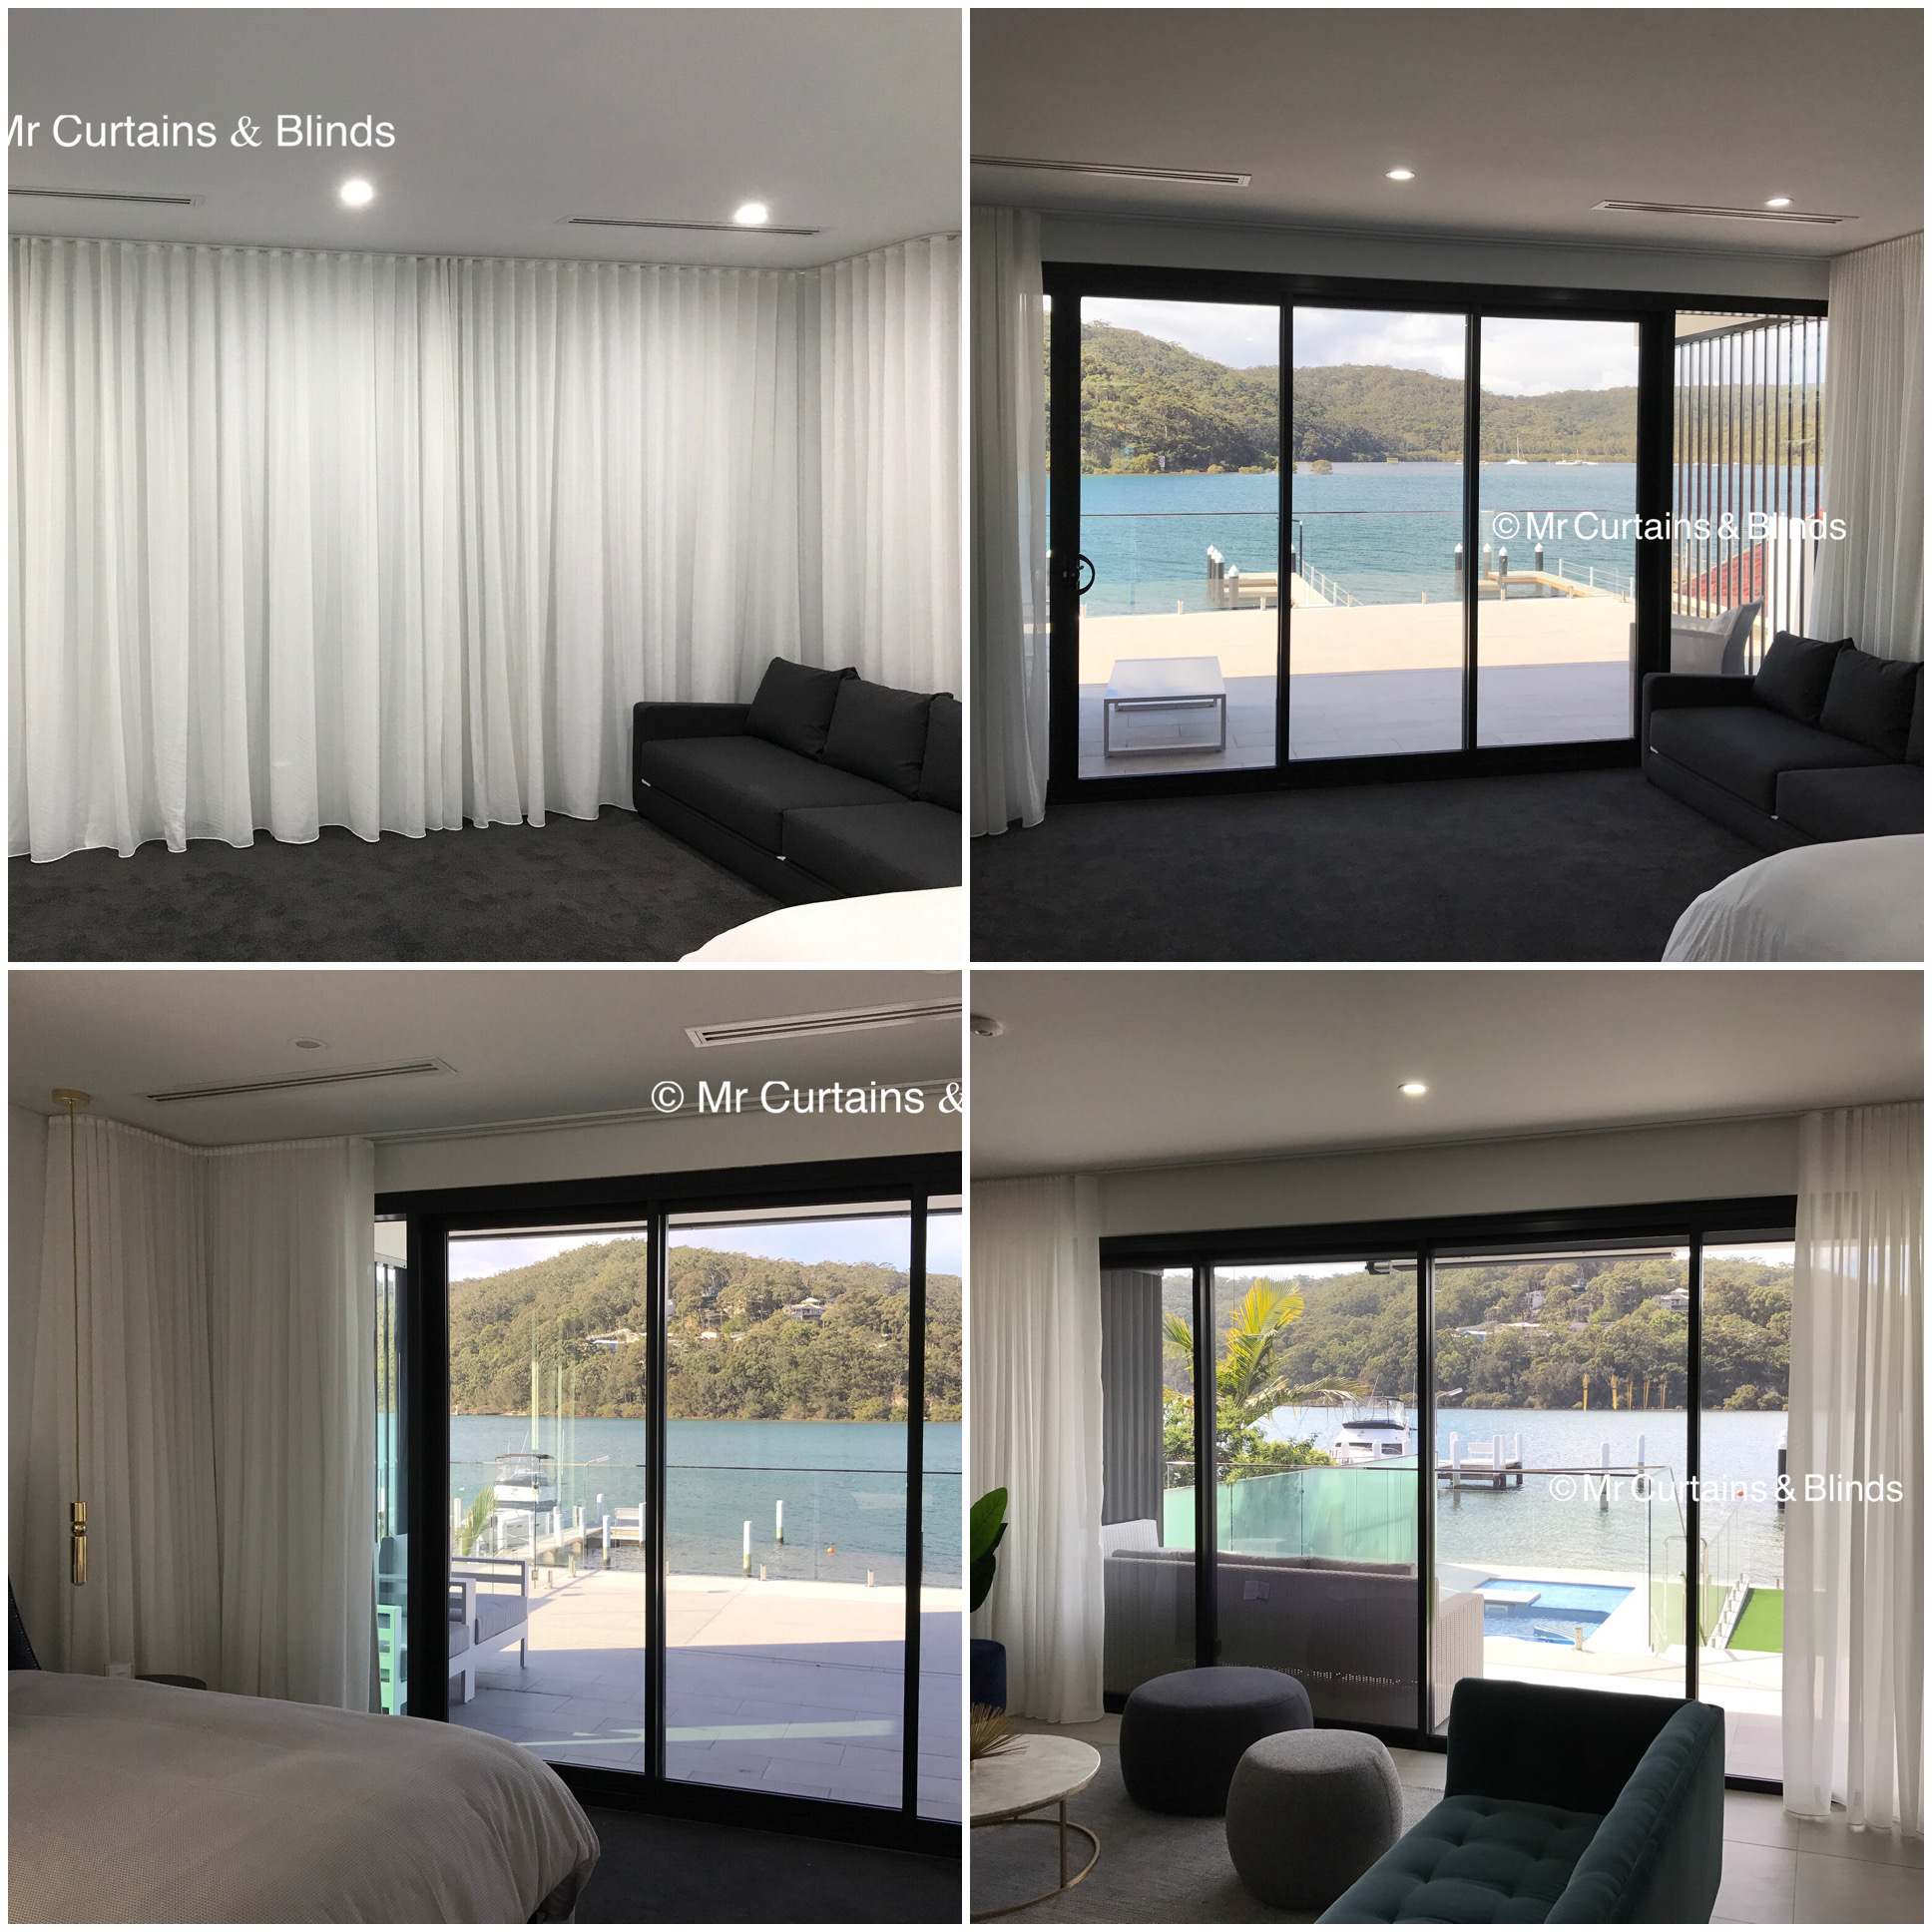 Sfold sheer curtains with blockout lining Booker Bay by mr curtains and blinds